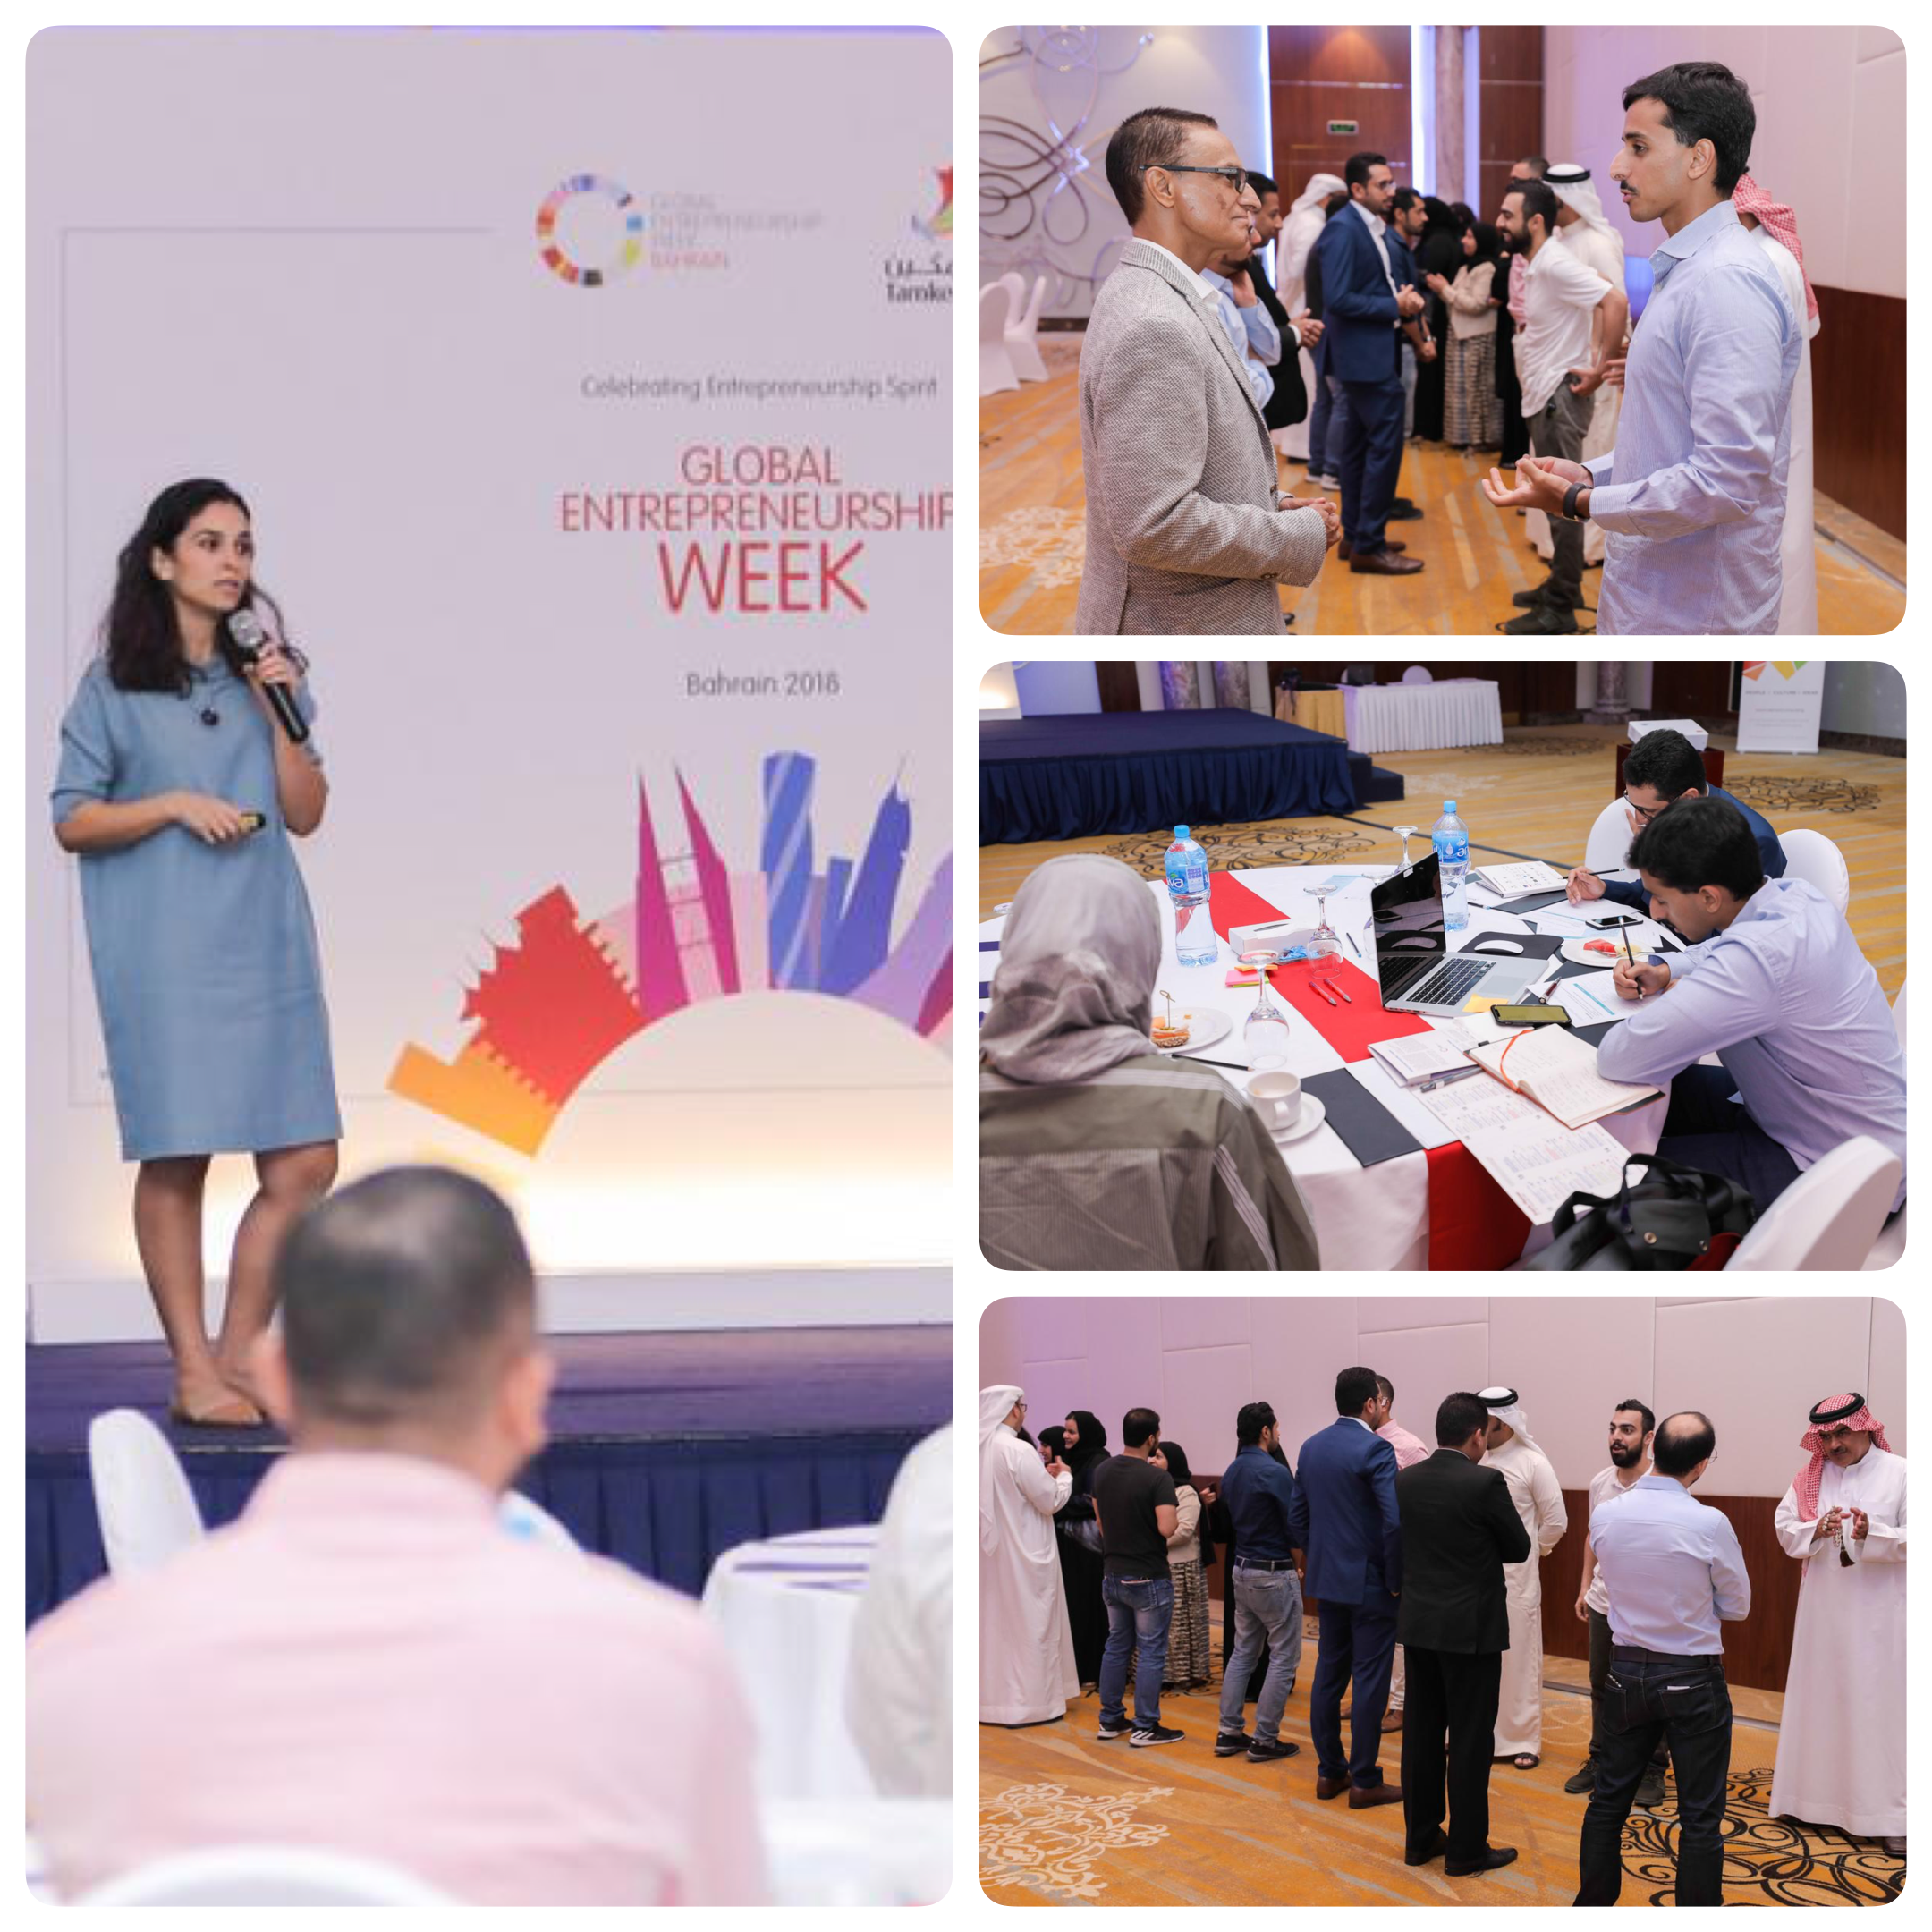 Global Entrepreneurship Week, Bahrain 2018 - Workshop on building and scaling your team to sustain growth